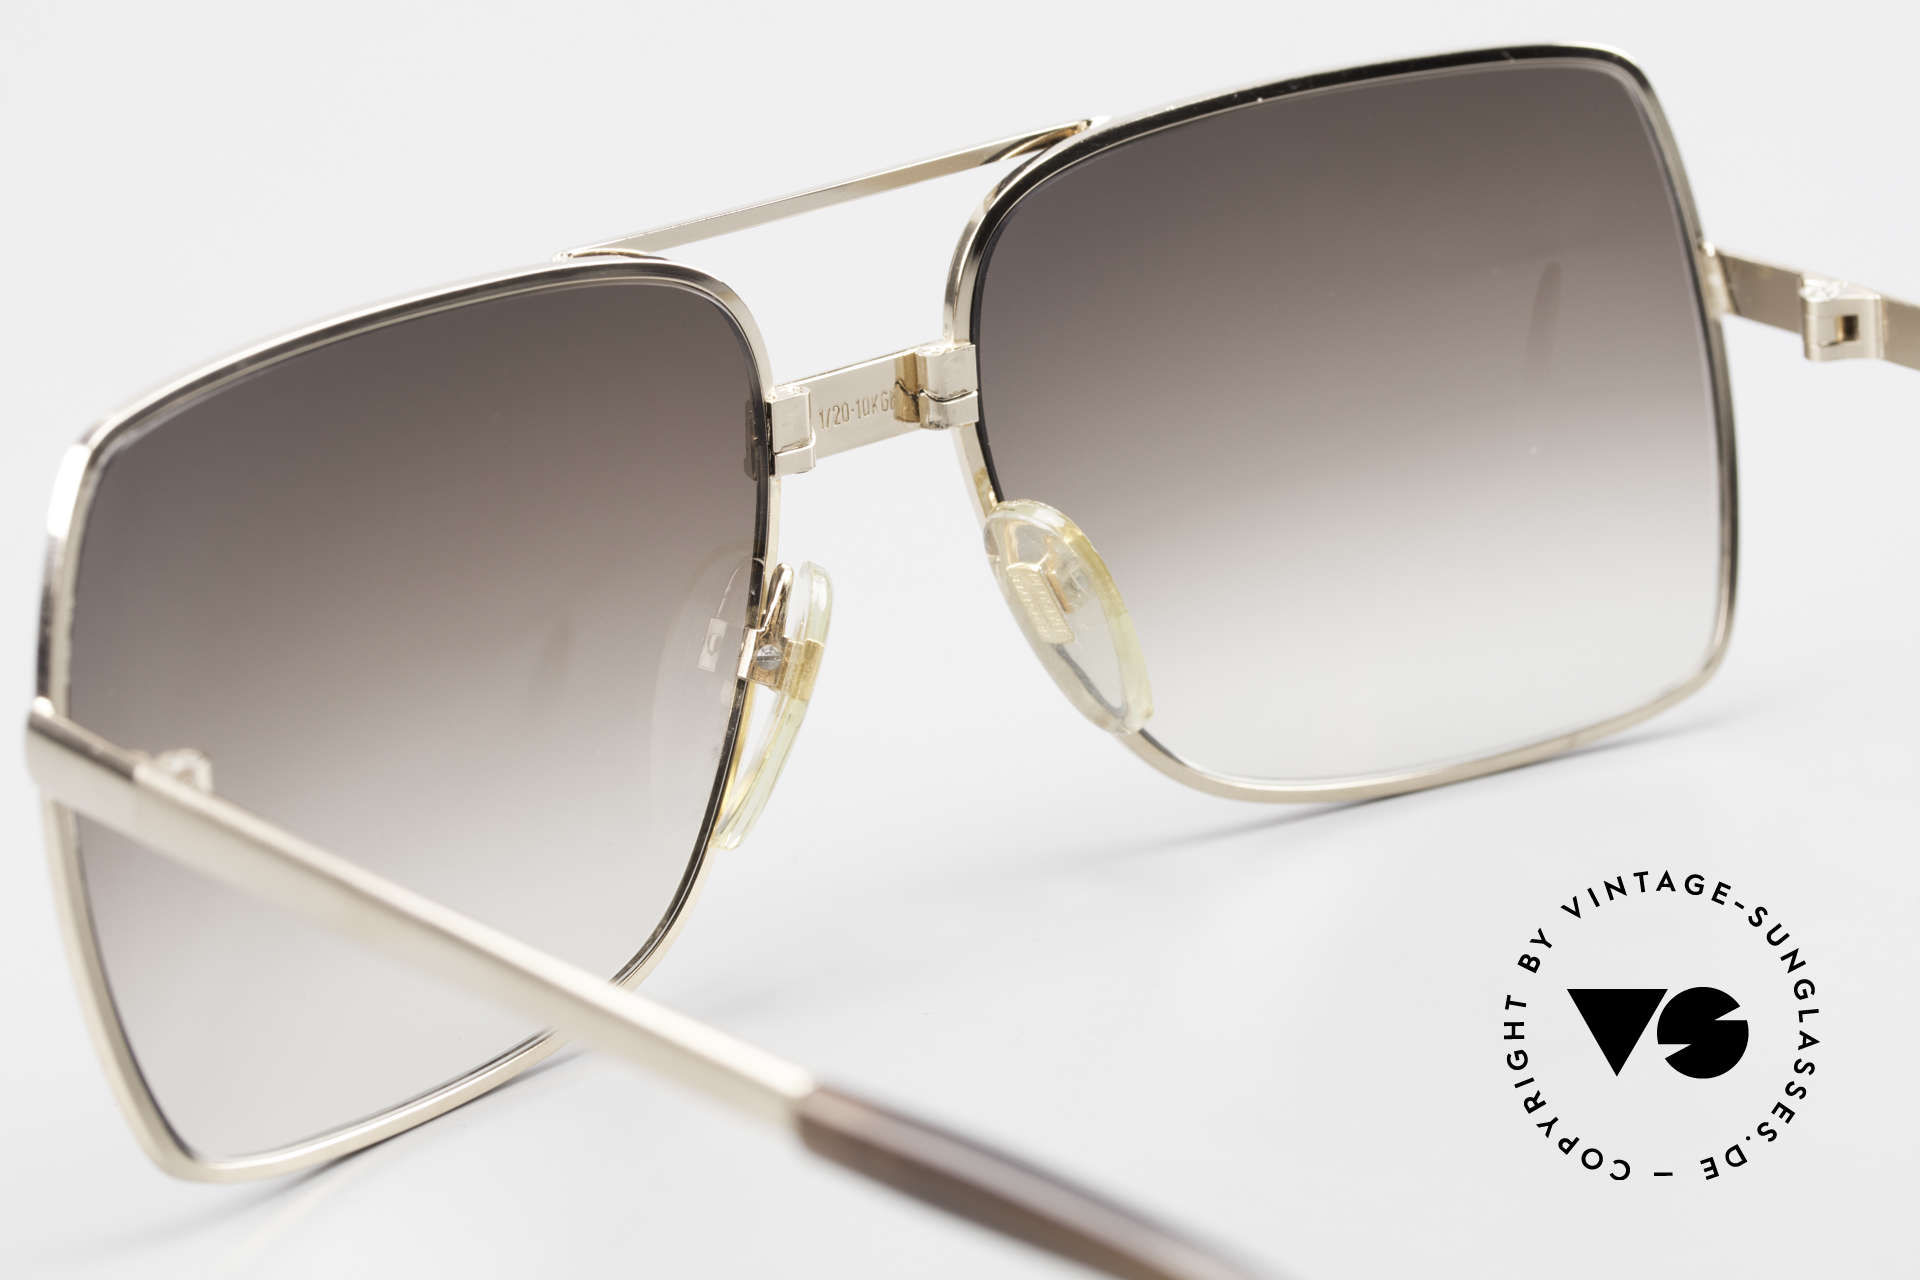 Neostyle Office 10 Gold Filled 70's Sunglasses, this app. 45 years old treasure can be glazed optionally, Made for Men